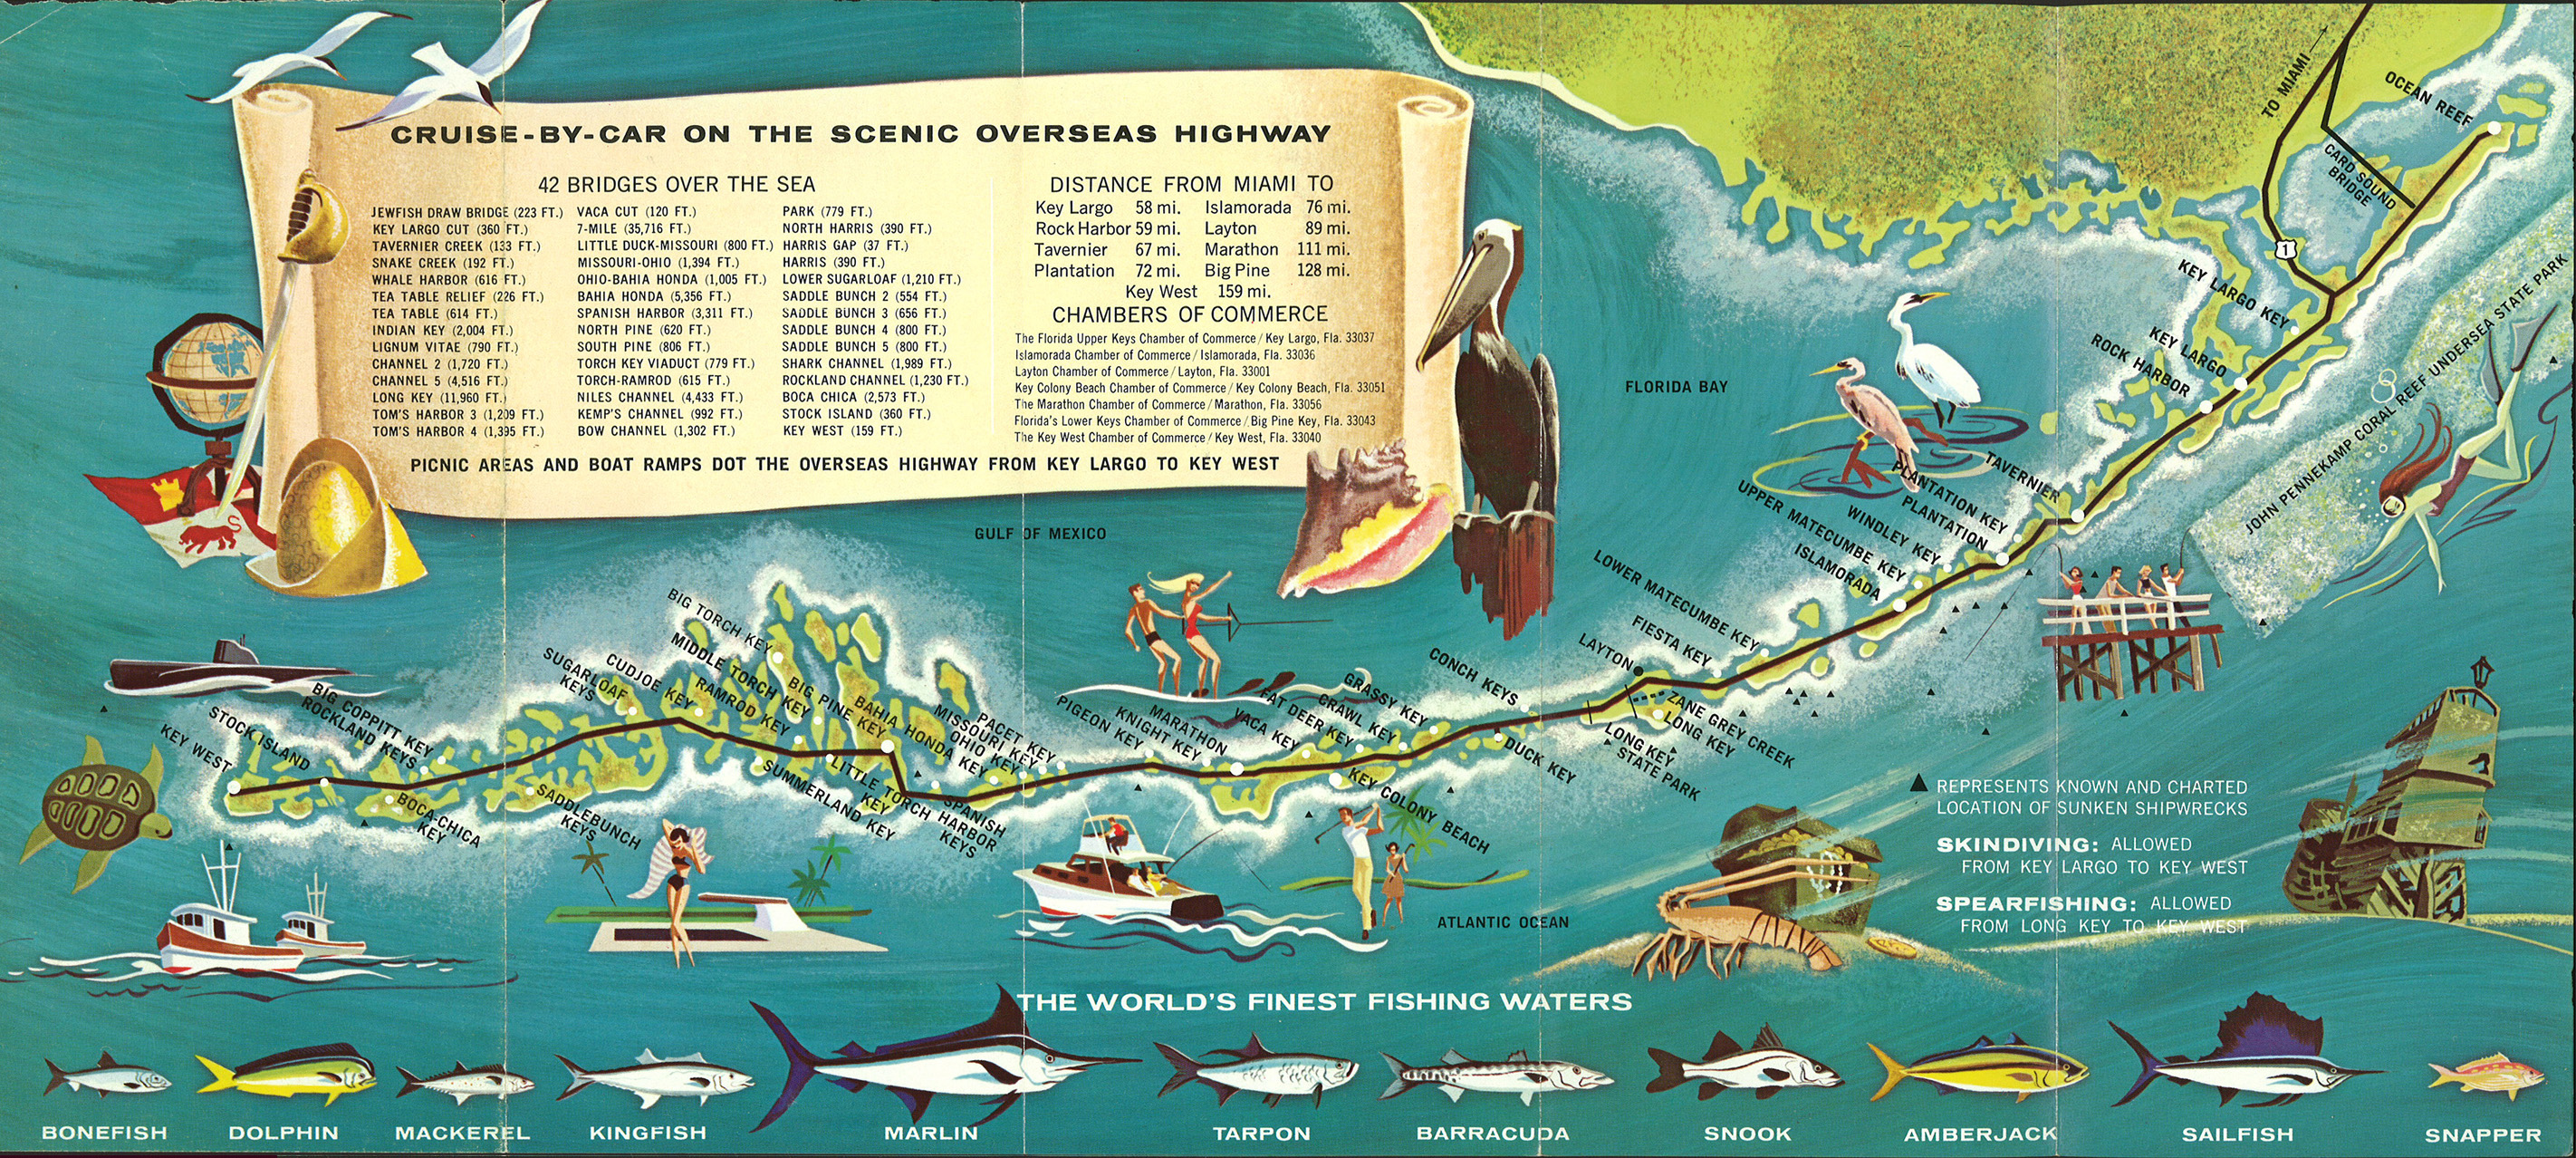 Map Of Florida Keys And Key West.Key West Retro Style